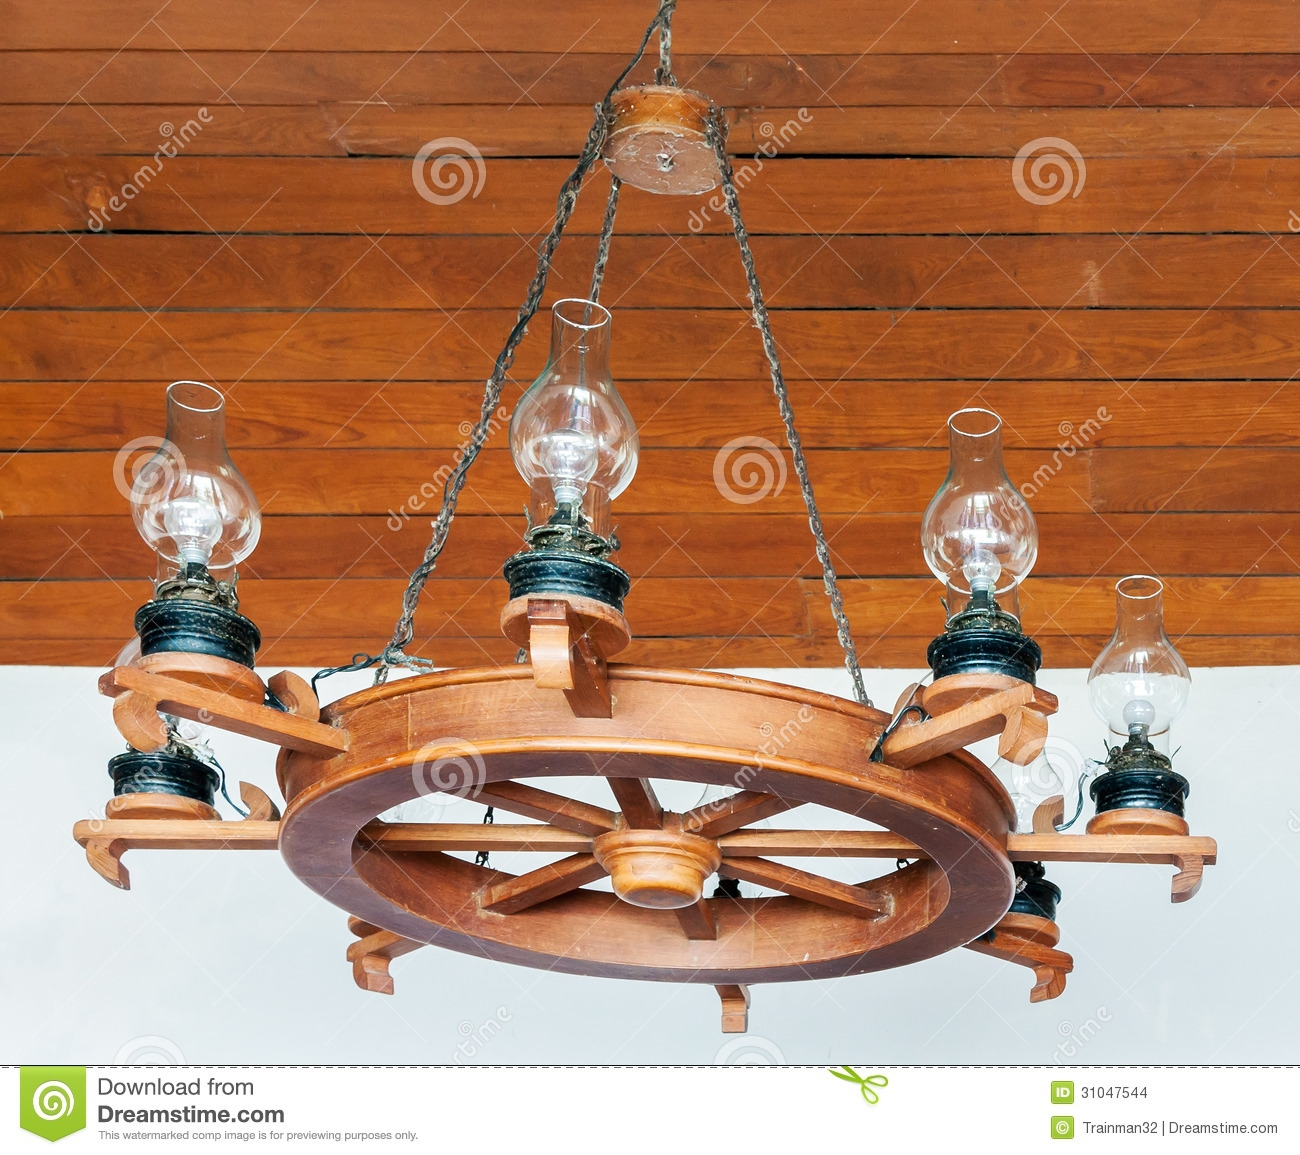 Wooden Chandeliers Stock Images Image 31047544 Intended For Wooden Chandeliers (View 15 of 15)